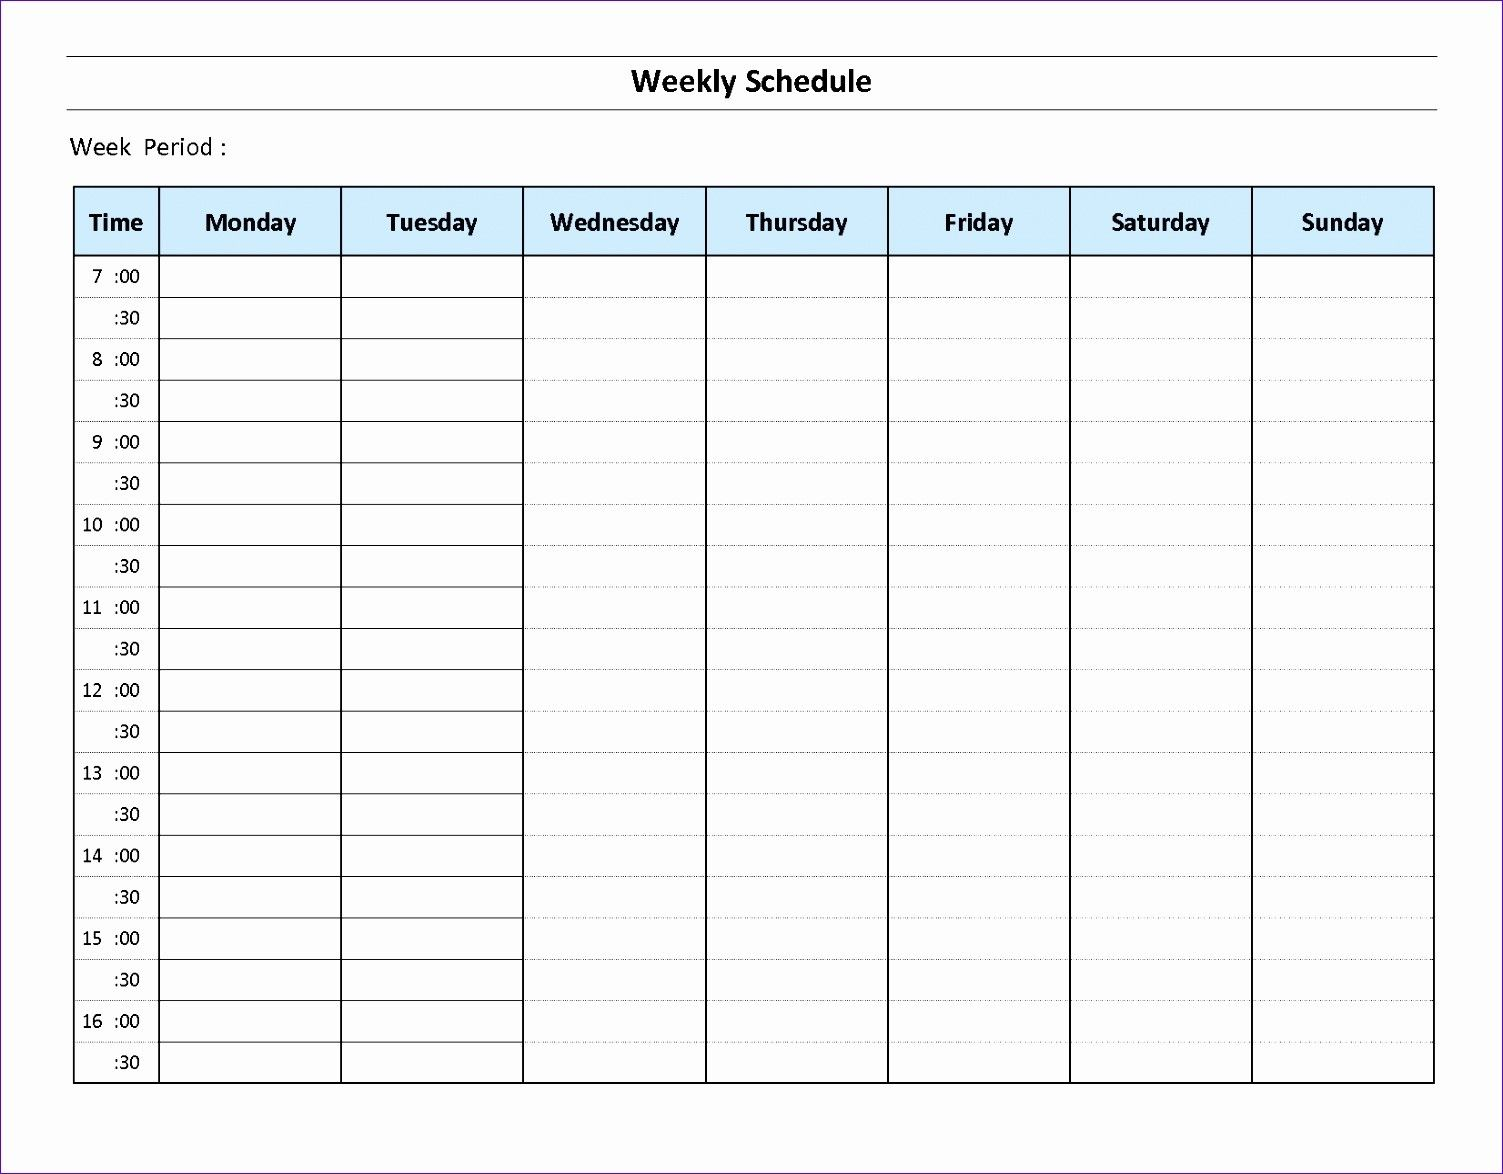 Weekly Schedule Maker Template Ten Things About Weekly